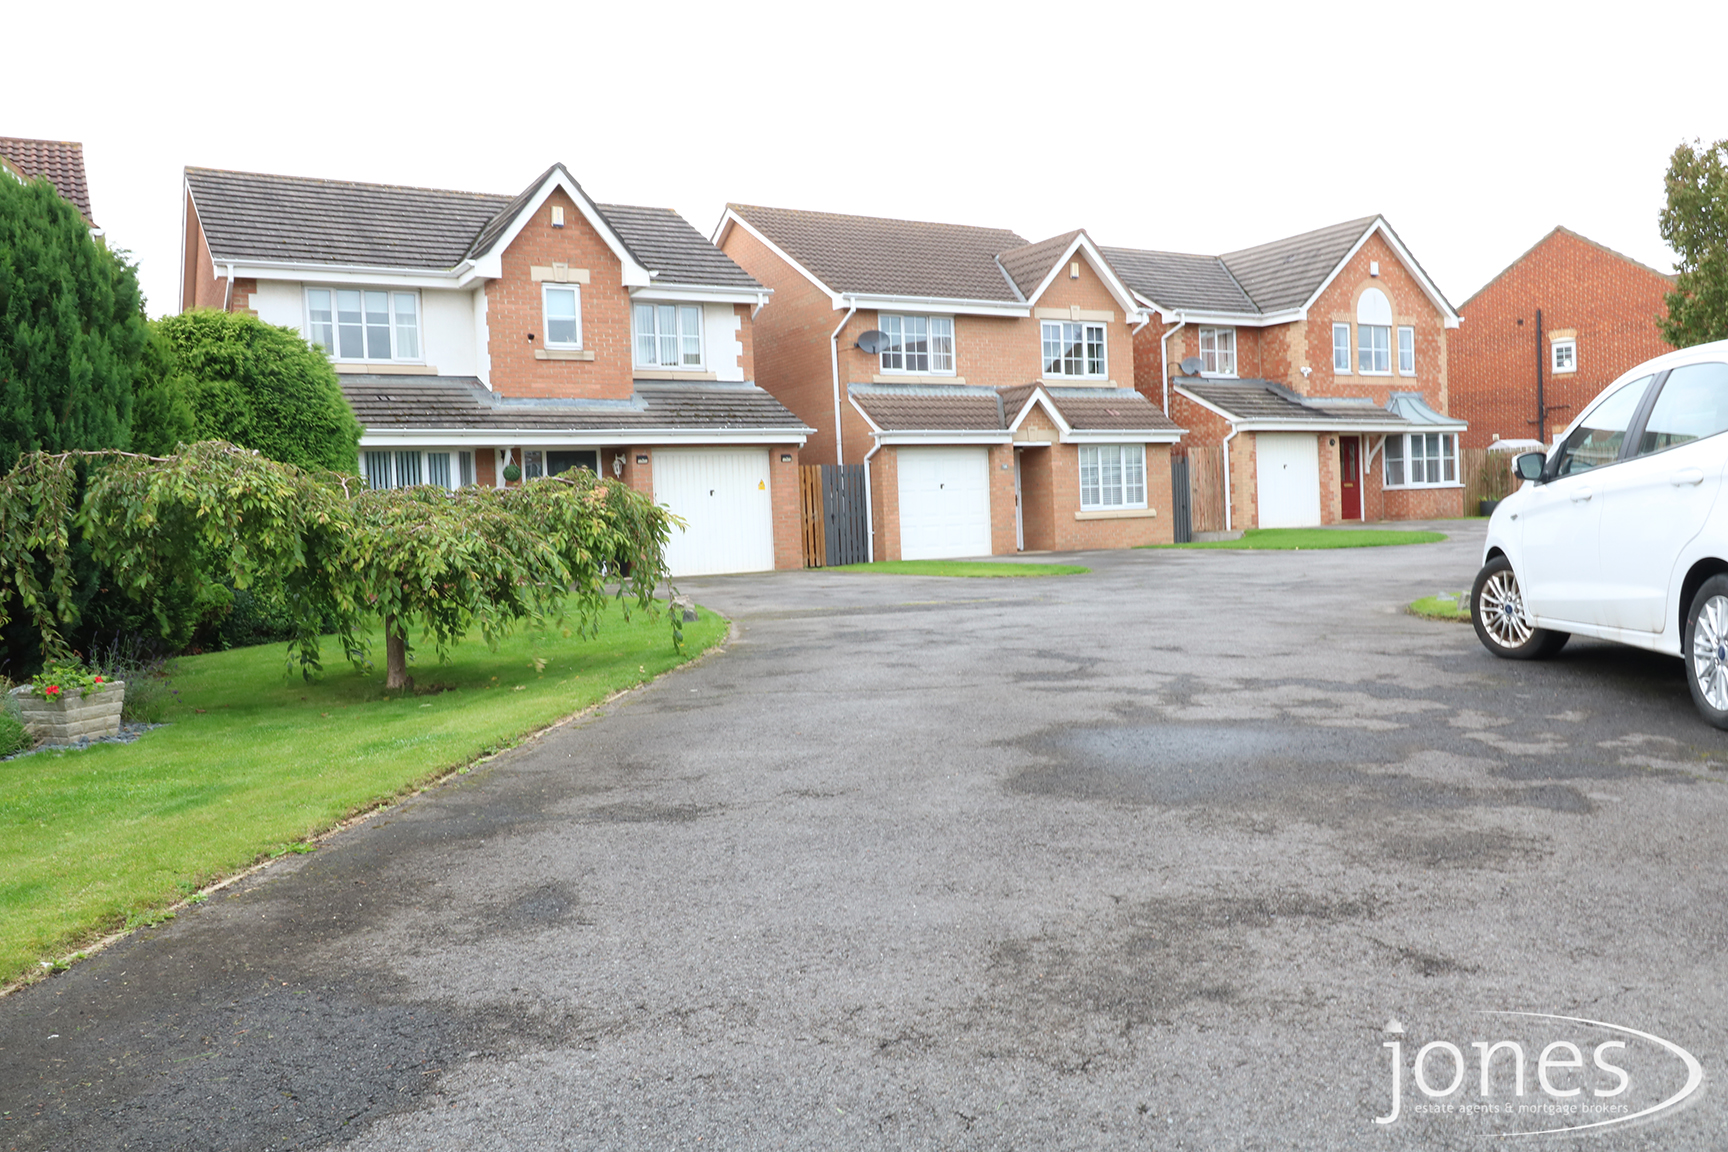 Home for Sale Let - Photo 22 West End Way , Low Hartburn,Stockton on Tees,TS18 3UA